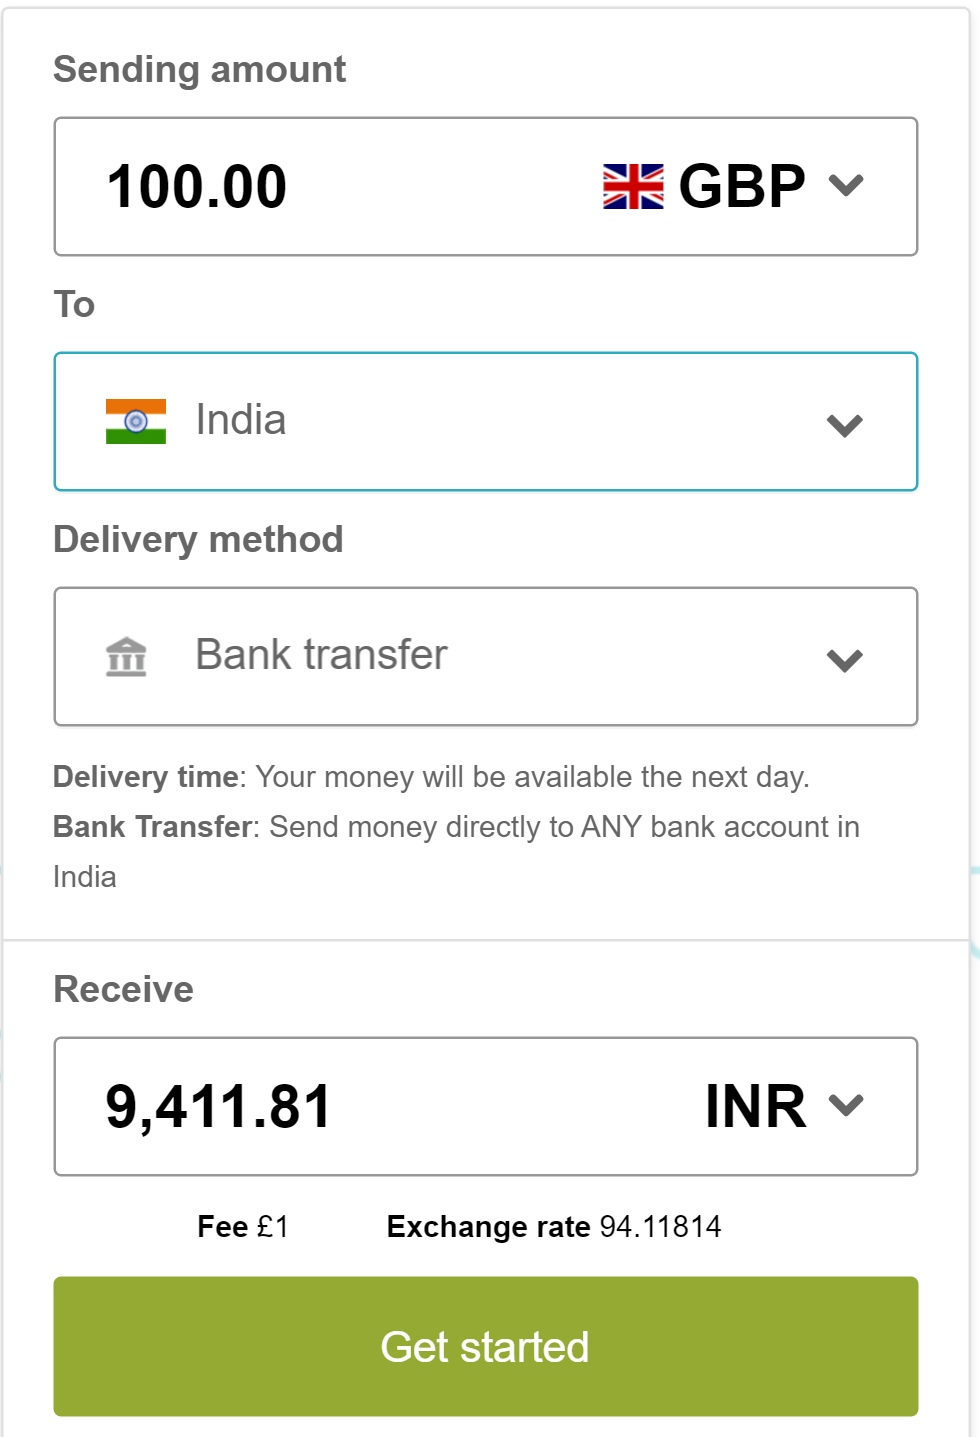 Comparison of Western Union and Azimo: Sending 100GBP from UK to India via bank transfer